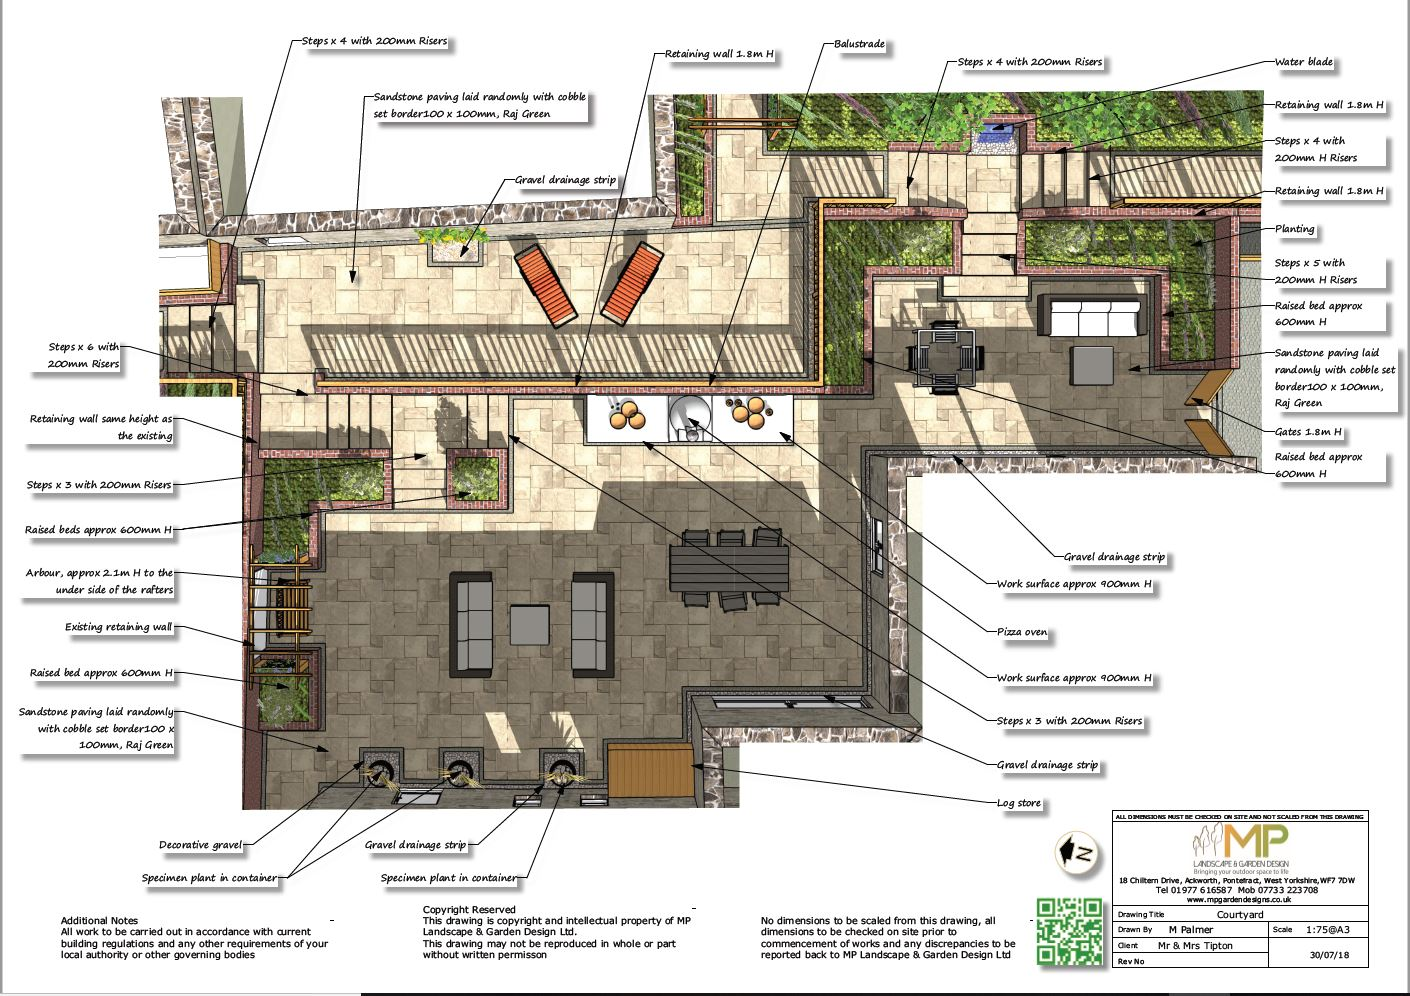 Courtyard layout plans for a property in Castleford.